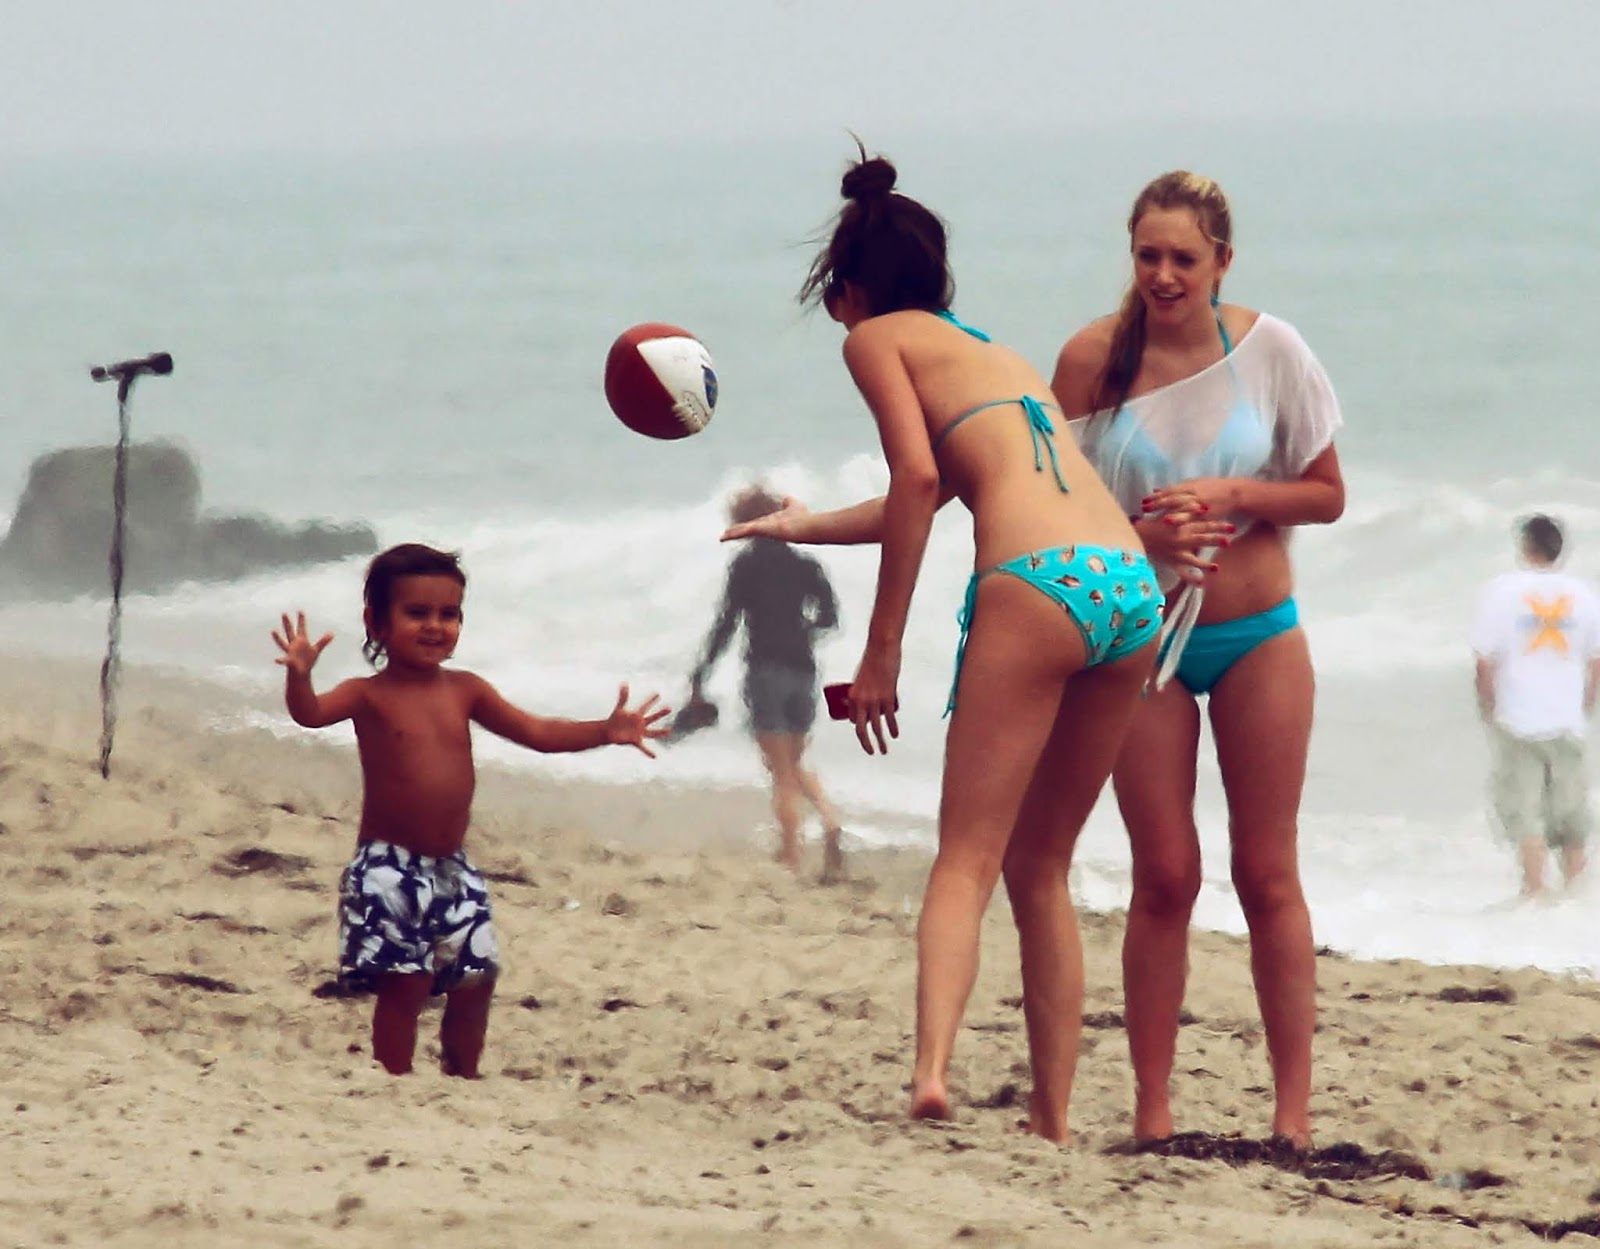 01 - At a Beach with friends in Malibu California on July 14, 2012